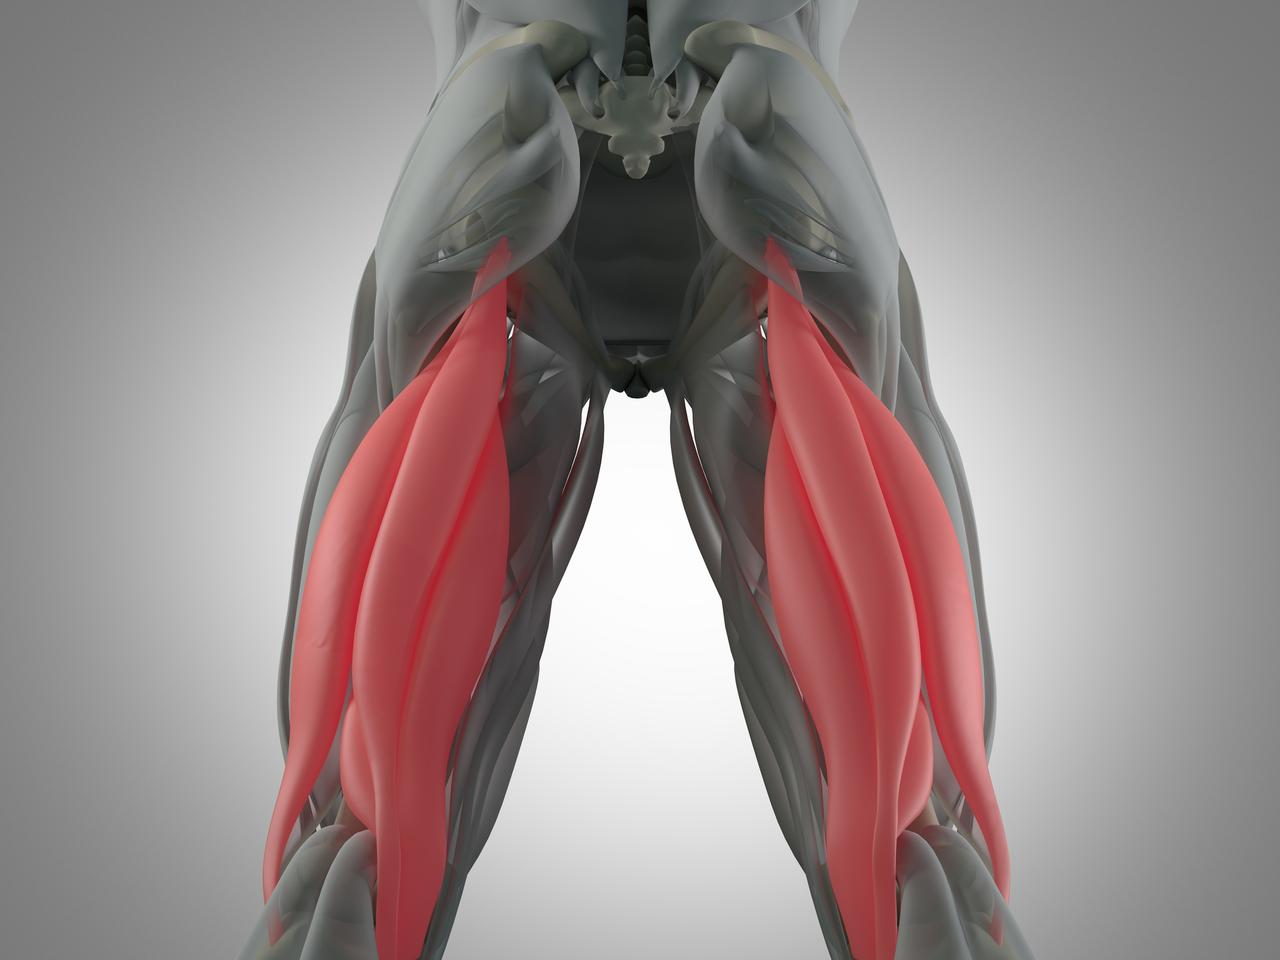 Scientists hope to one day regenerate damaged muscles by using a technique called direct cell reprogramming, and a new study is a step in the right direction